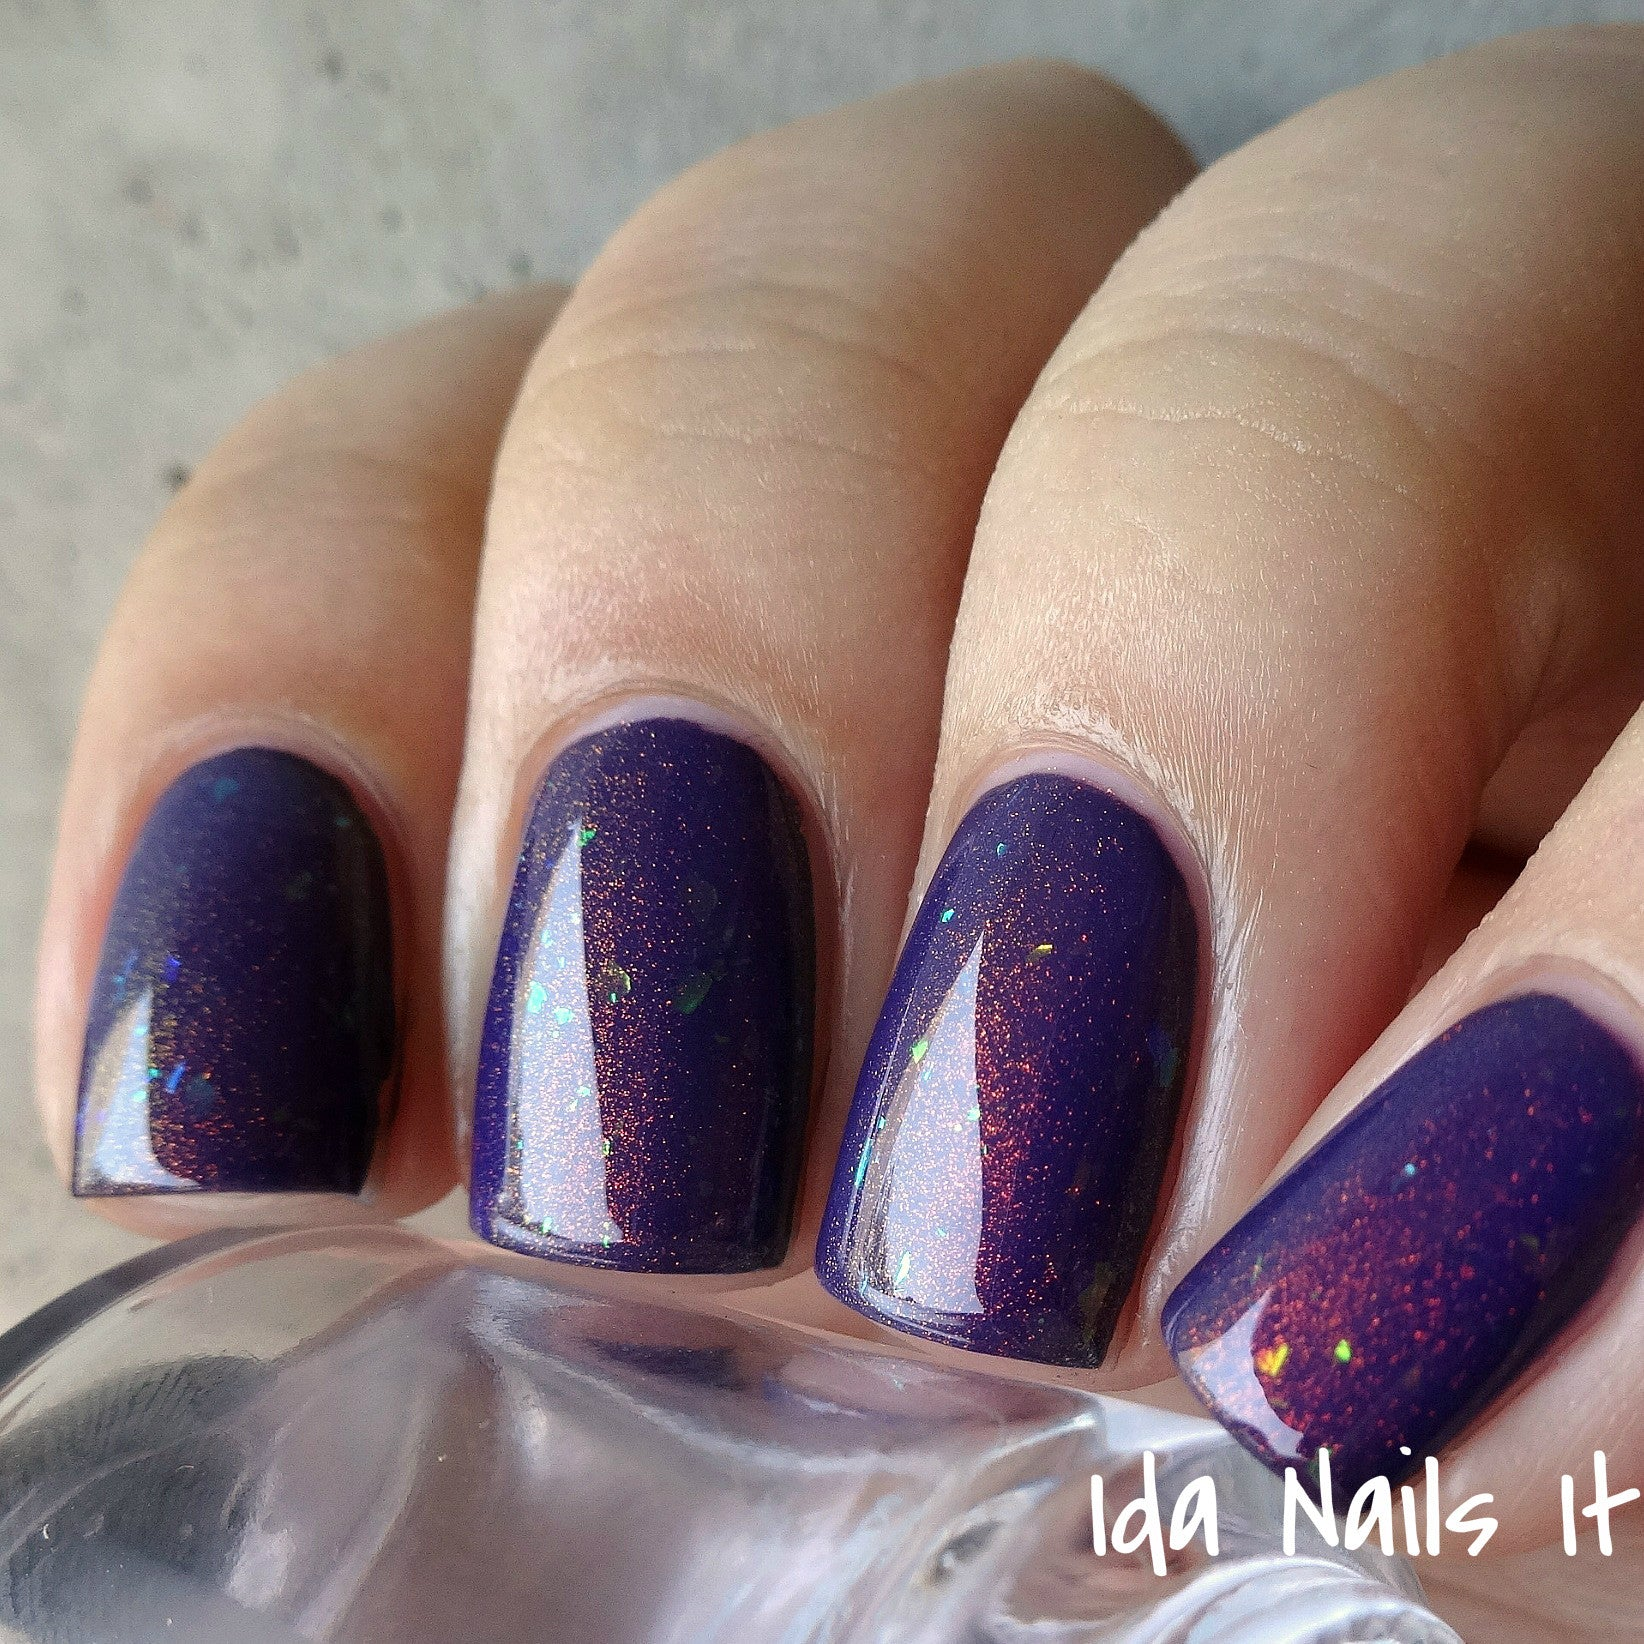 AUGUST SALE - 2018 LE Polish MMM Overpours (October to December)